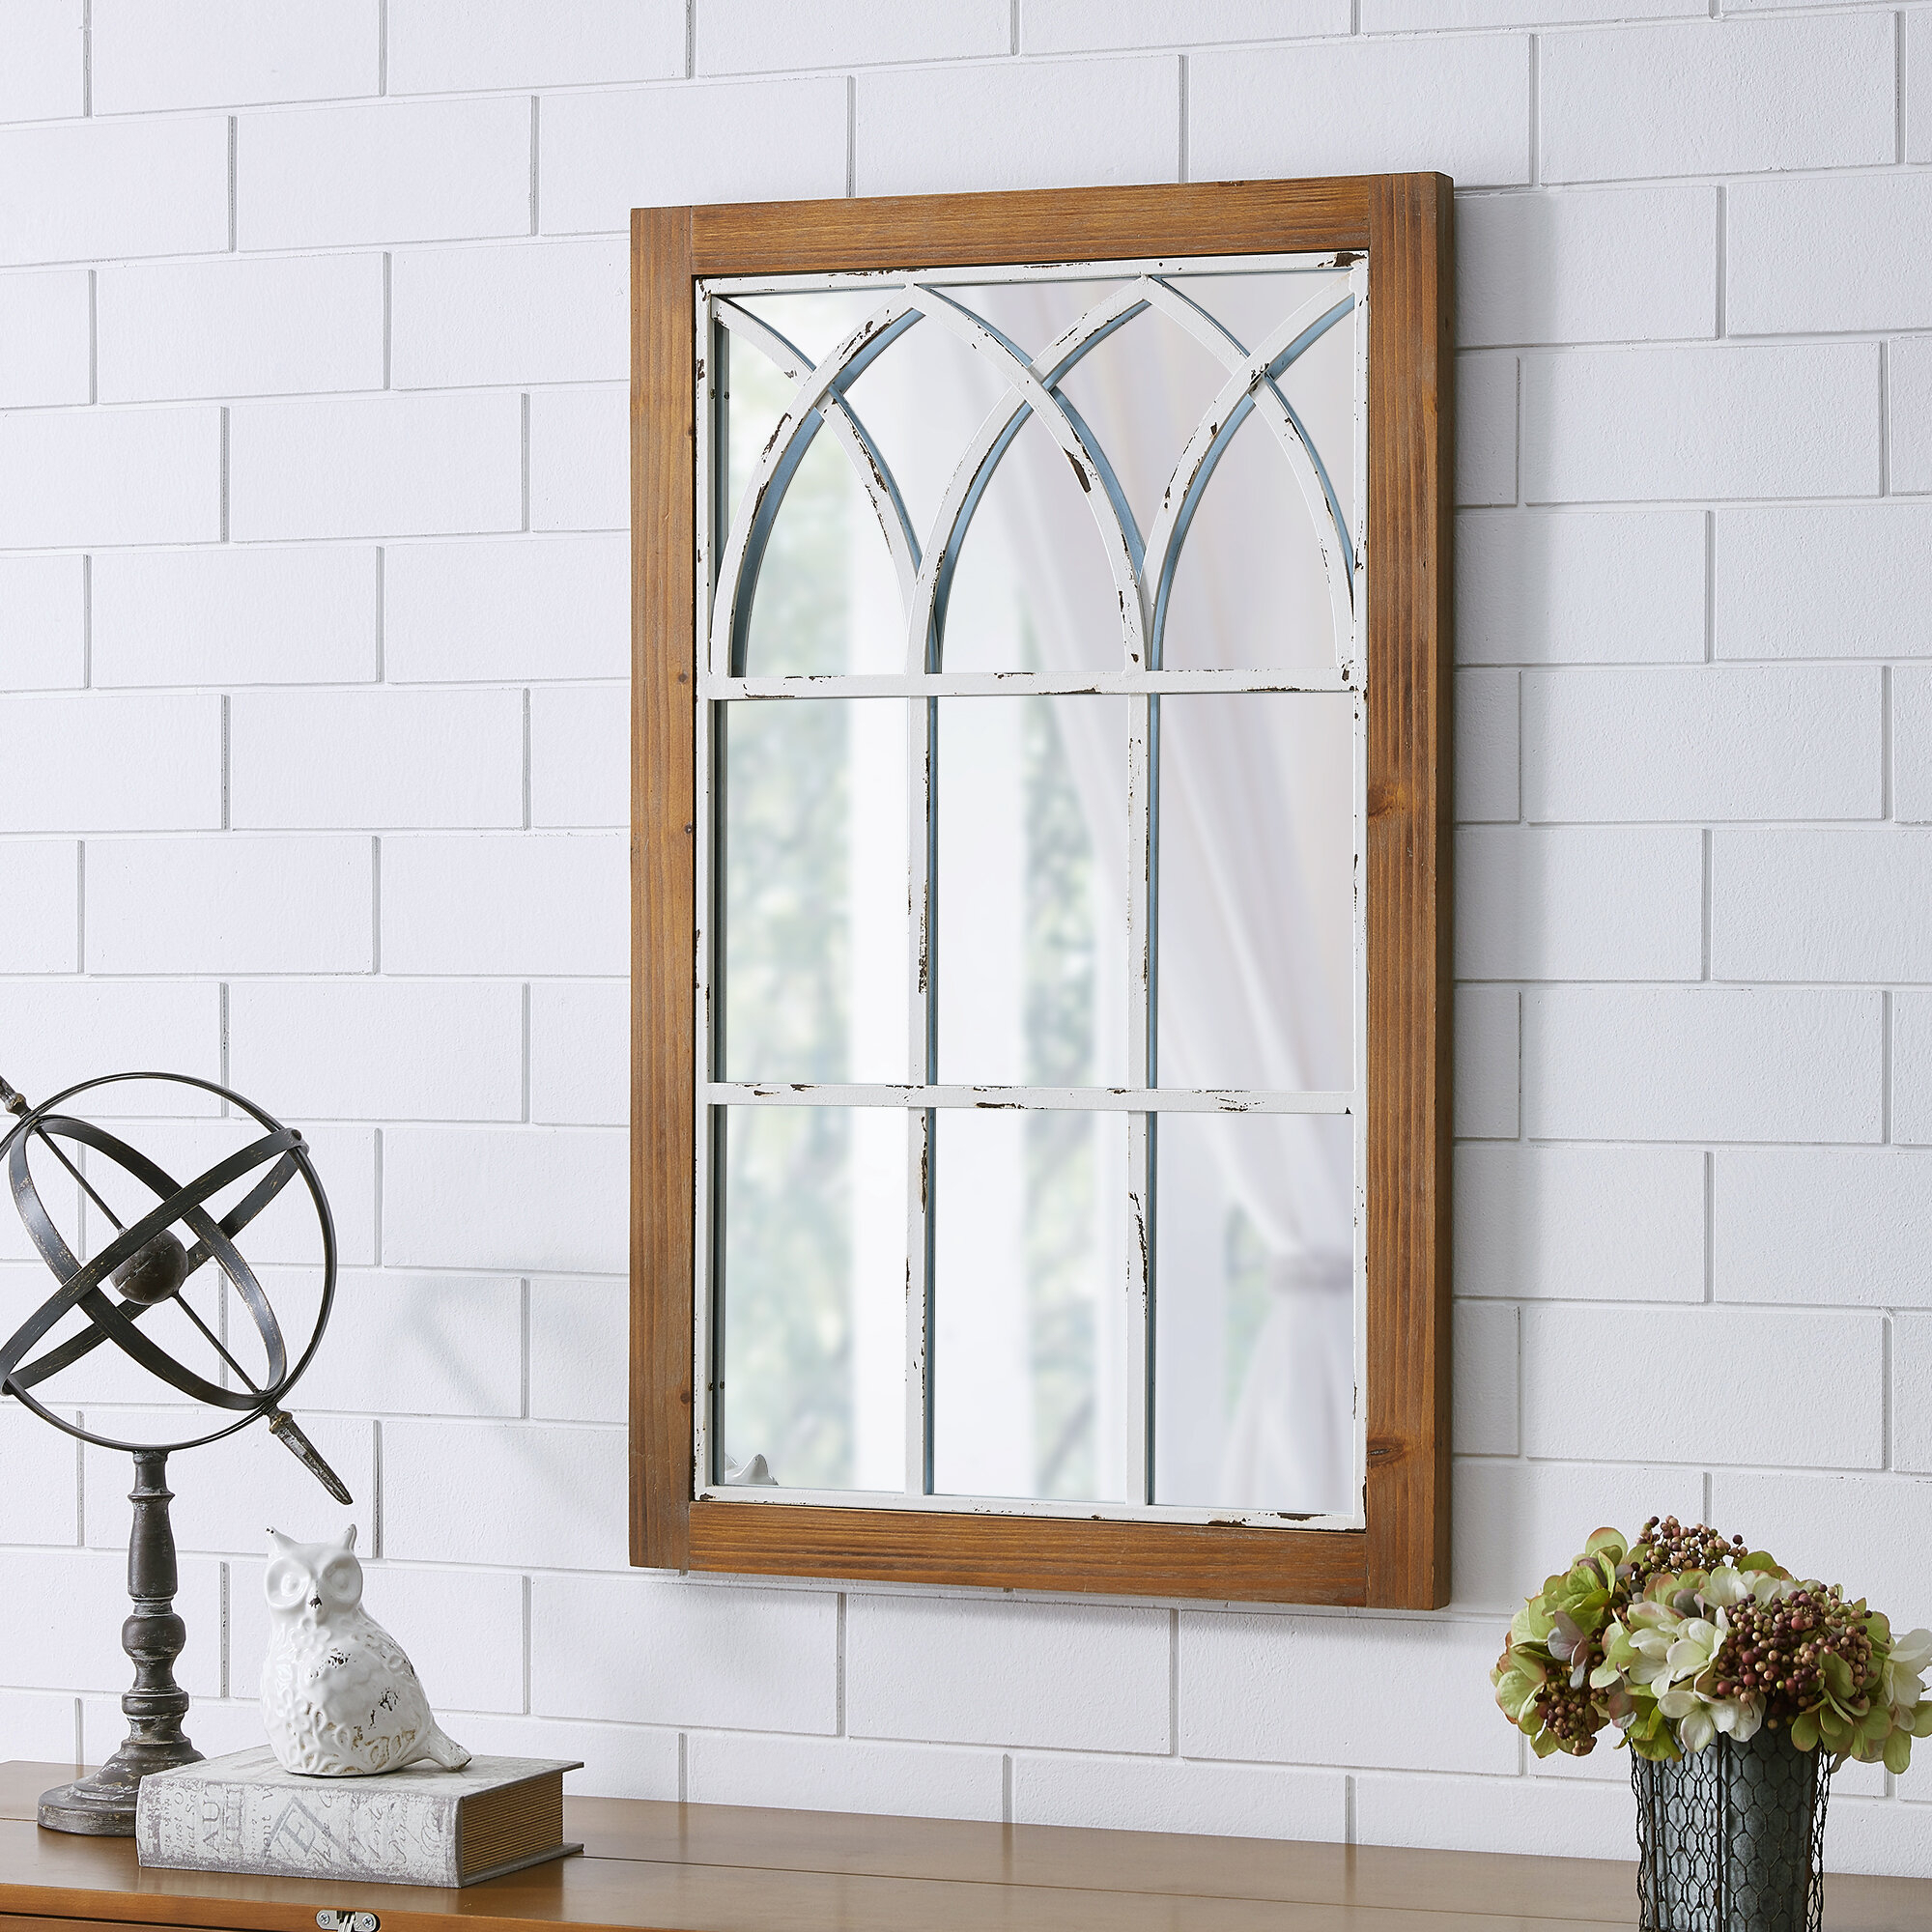 Embry Arched Window Traditional Accent Mirror Intended For Traditional Metal Wall Mirrors (Photo 3 of 30)